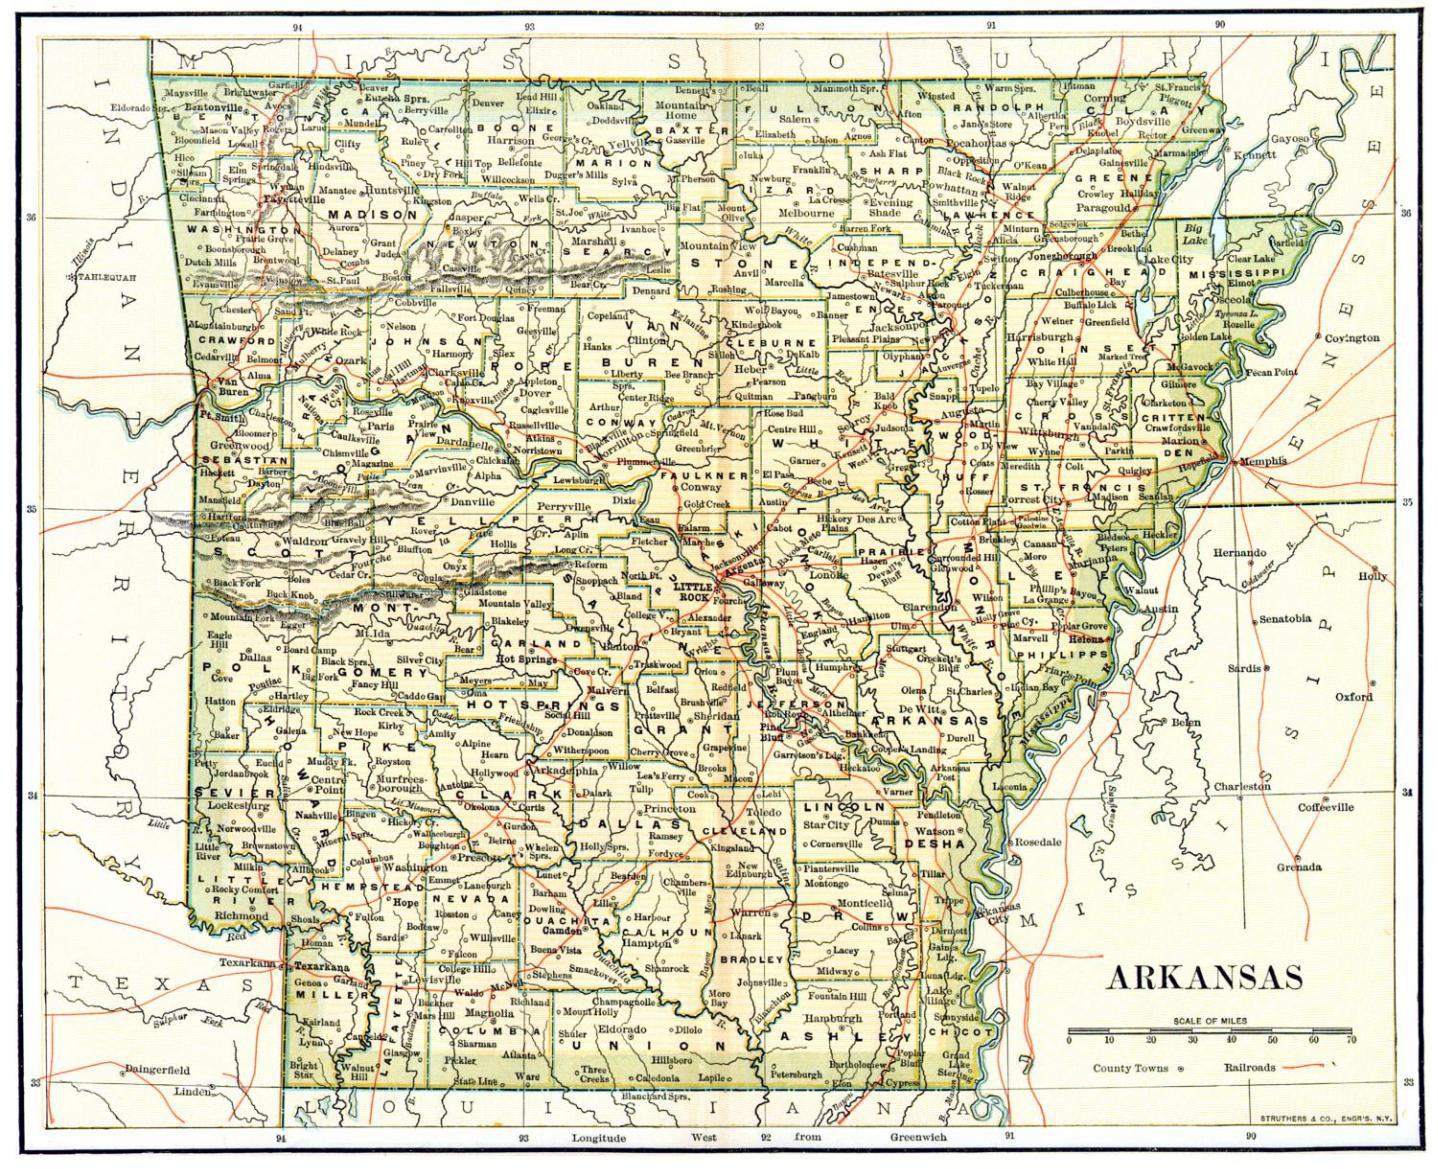 Detailed Old Administrative Map Of Arkansas State Vidiani - Arkansas highway map